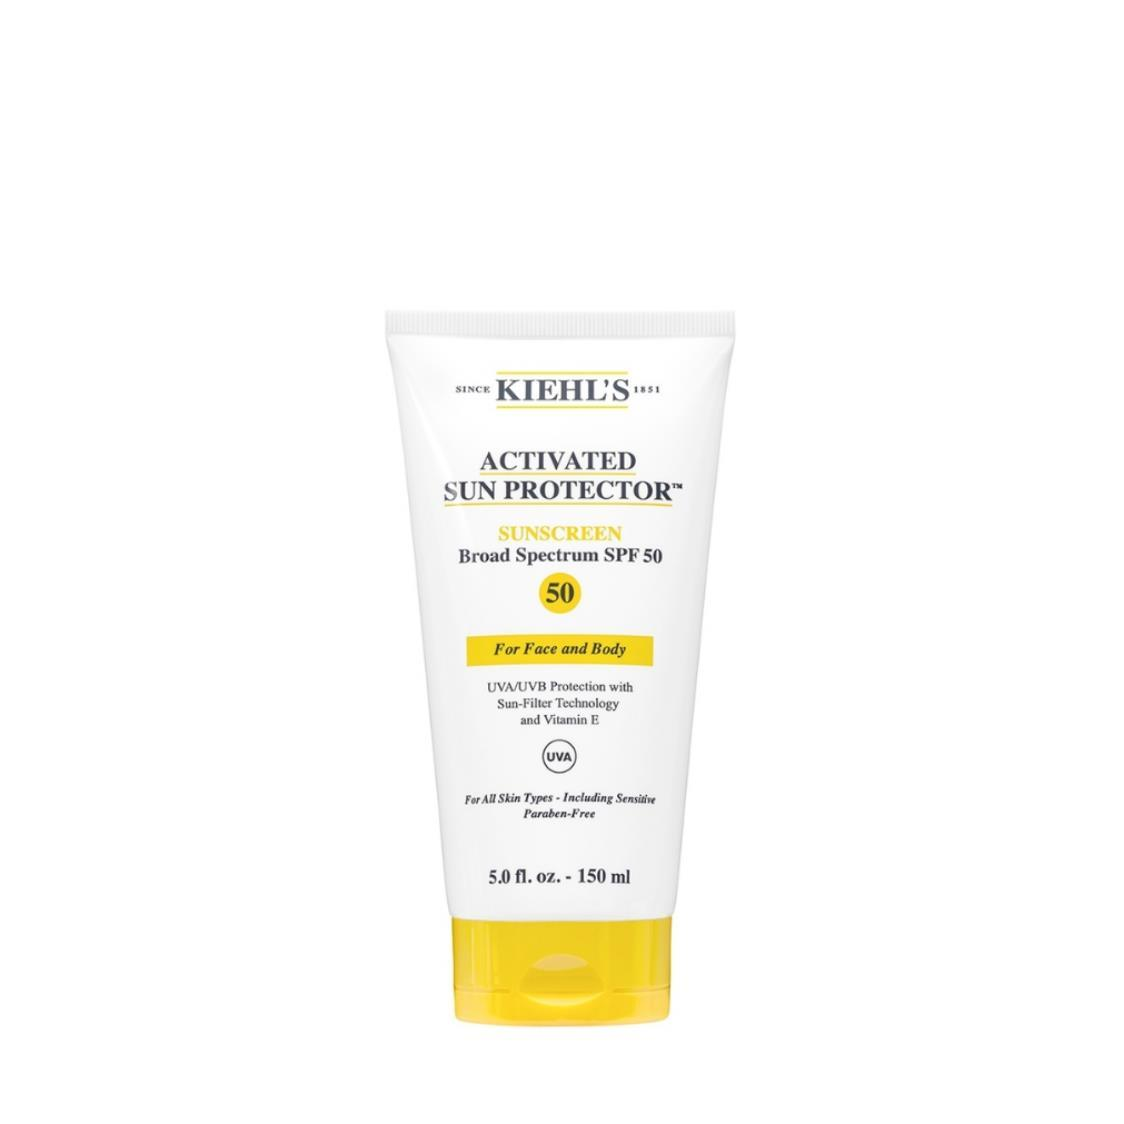 Kiehls Activated Sun Protector Sunscreen SPF 50